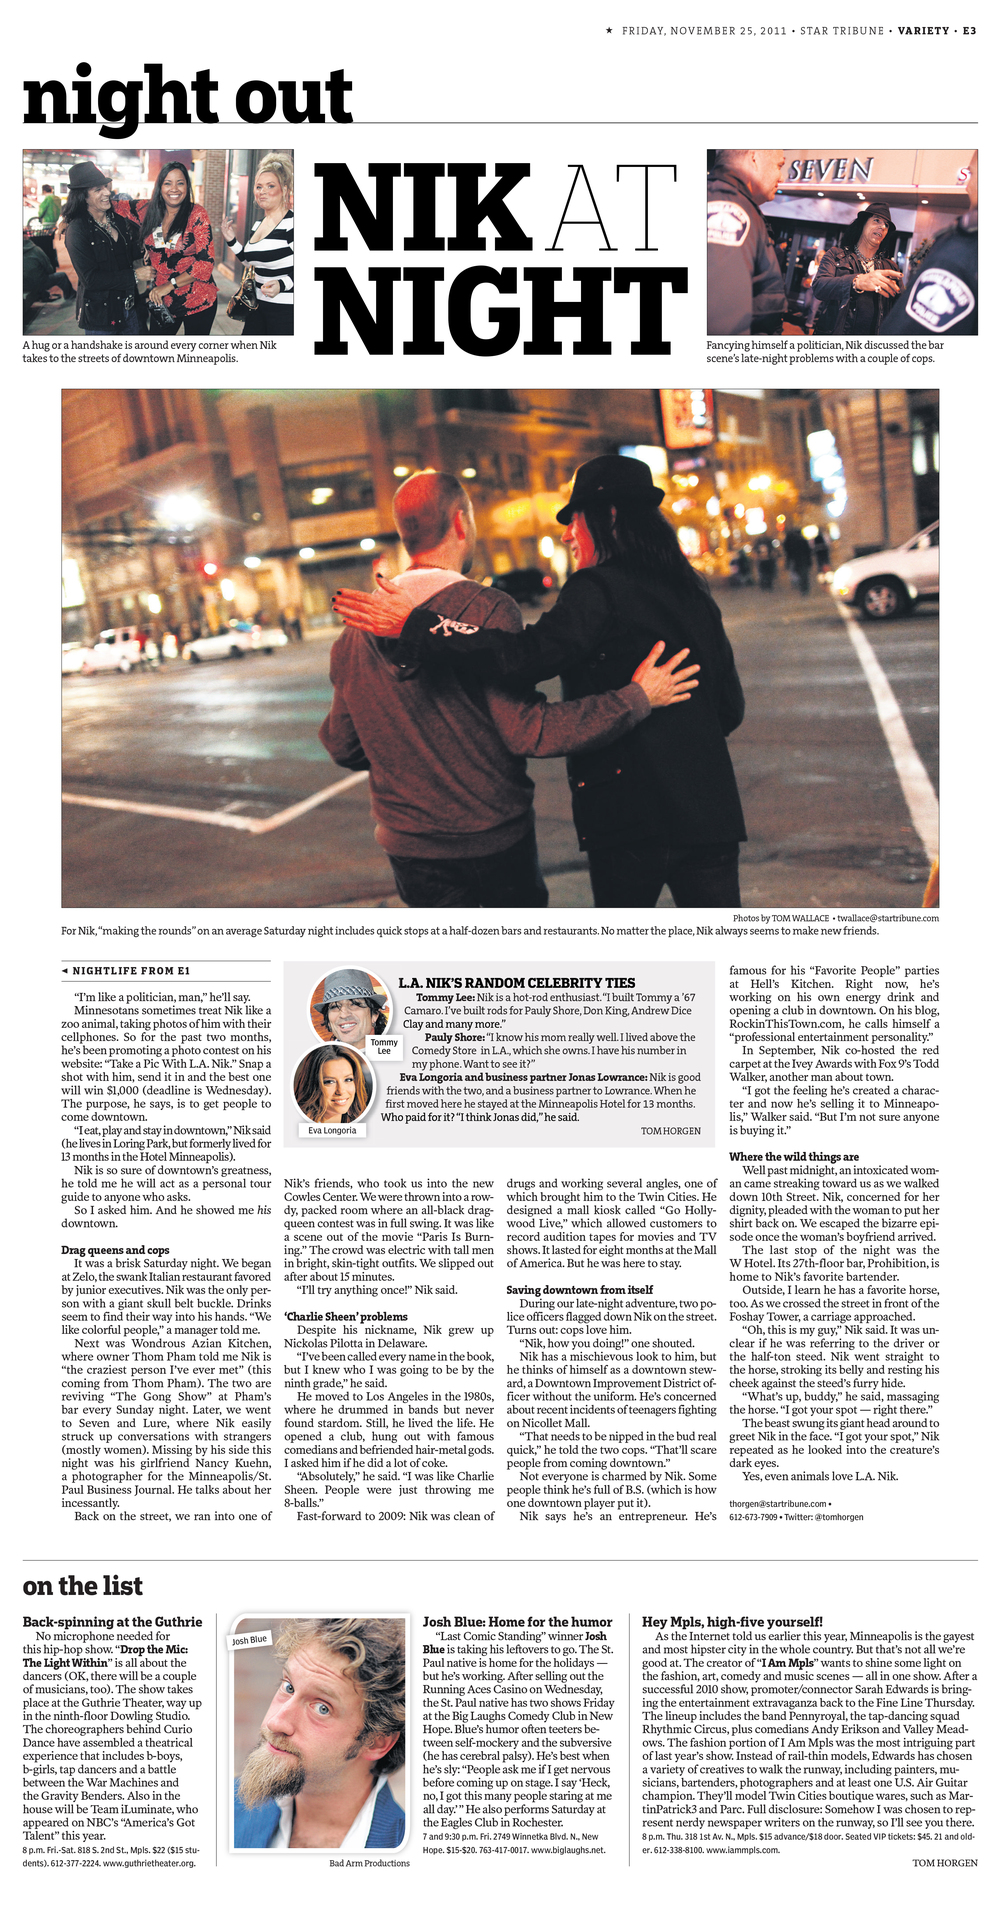 Star Tribune Cover Story - Black Friday 2011